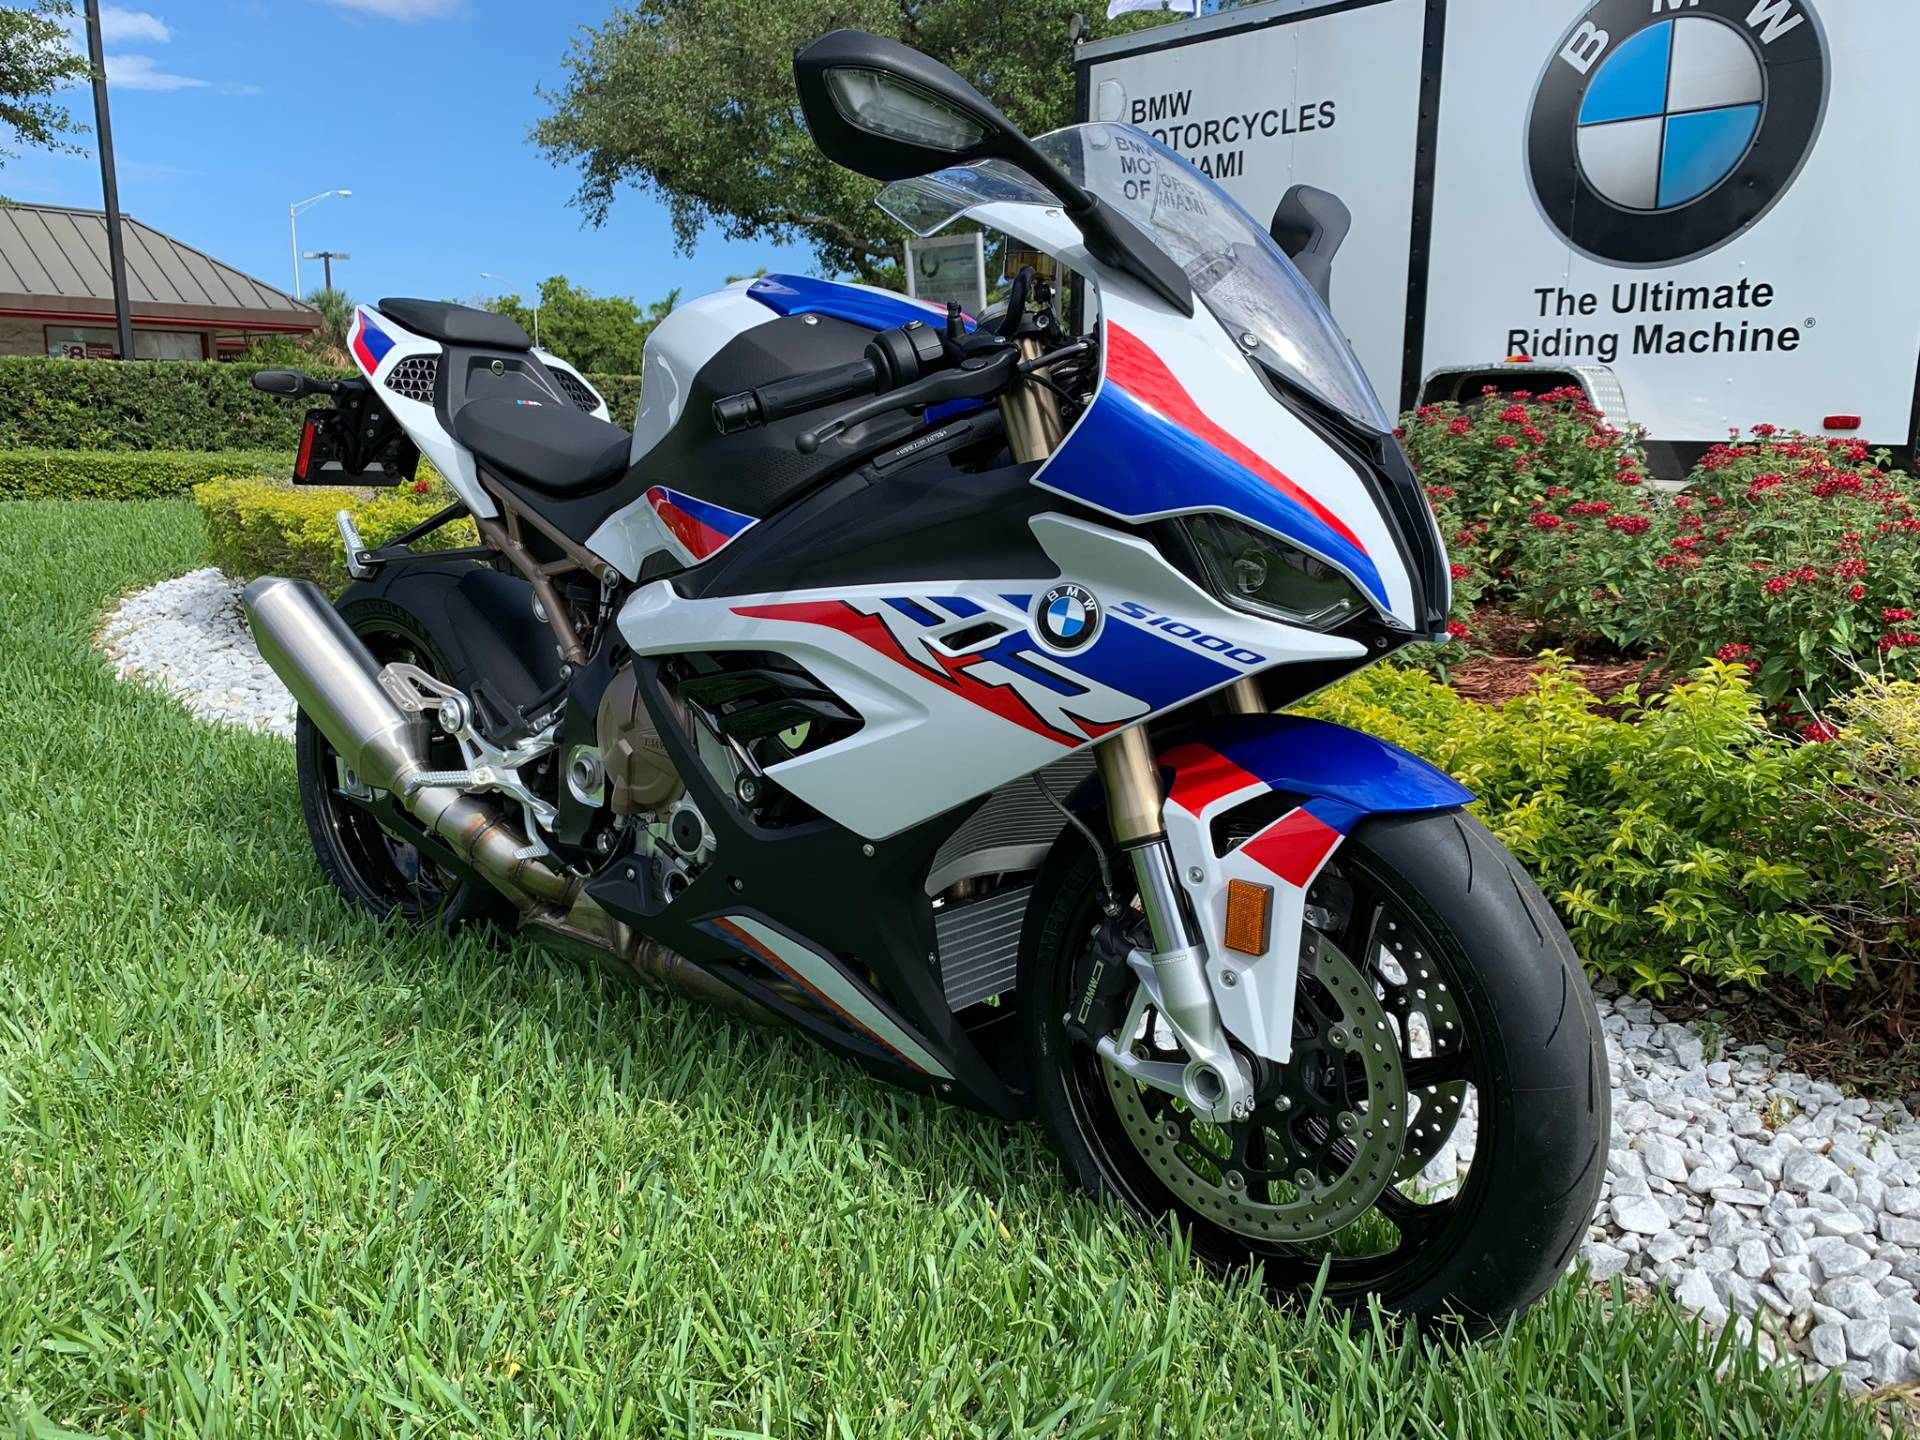 New 2020 BMW S 1000 RR for sale, BMW S 1000RR for sale, BMW Motorcycle S1000RR, new BMW RR, Sport. BMW Motorcycles of Miami, Motorcycles of Miami, Motorcycles Miami, New Motorcycles, Used Motorcycles, pre-owned. #BMWMotorcyclesOfMiami #MotorcyclesOfMiami #MotorcyclesMiami - Photo 30